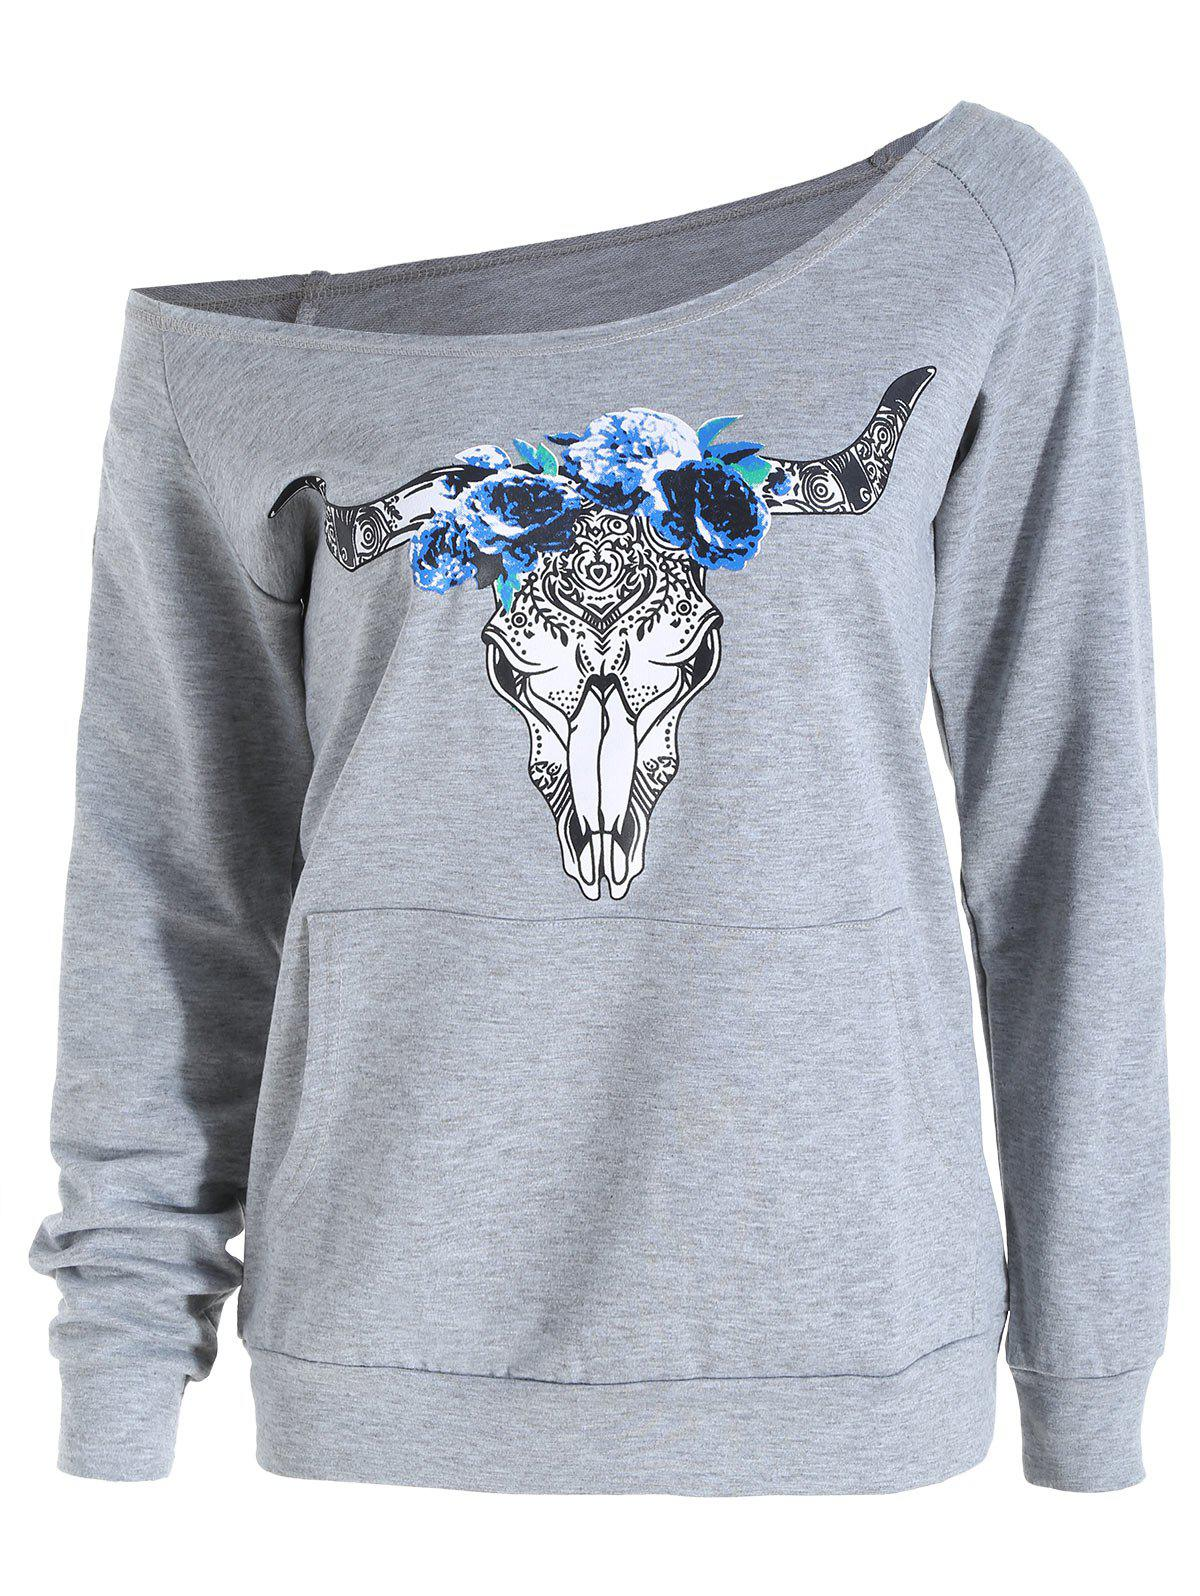 Shops Raglan Sleeve Elk Print Skew Neck Graphic Sweatshirt